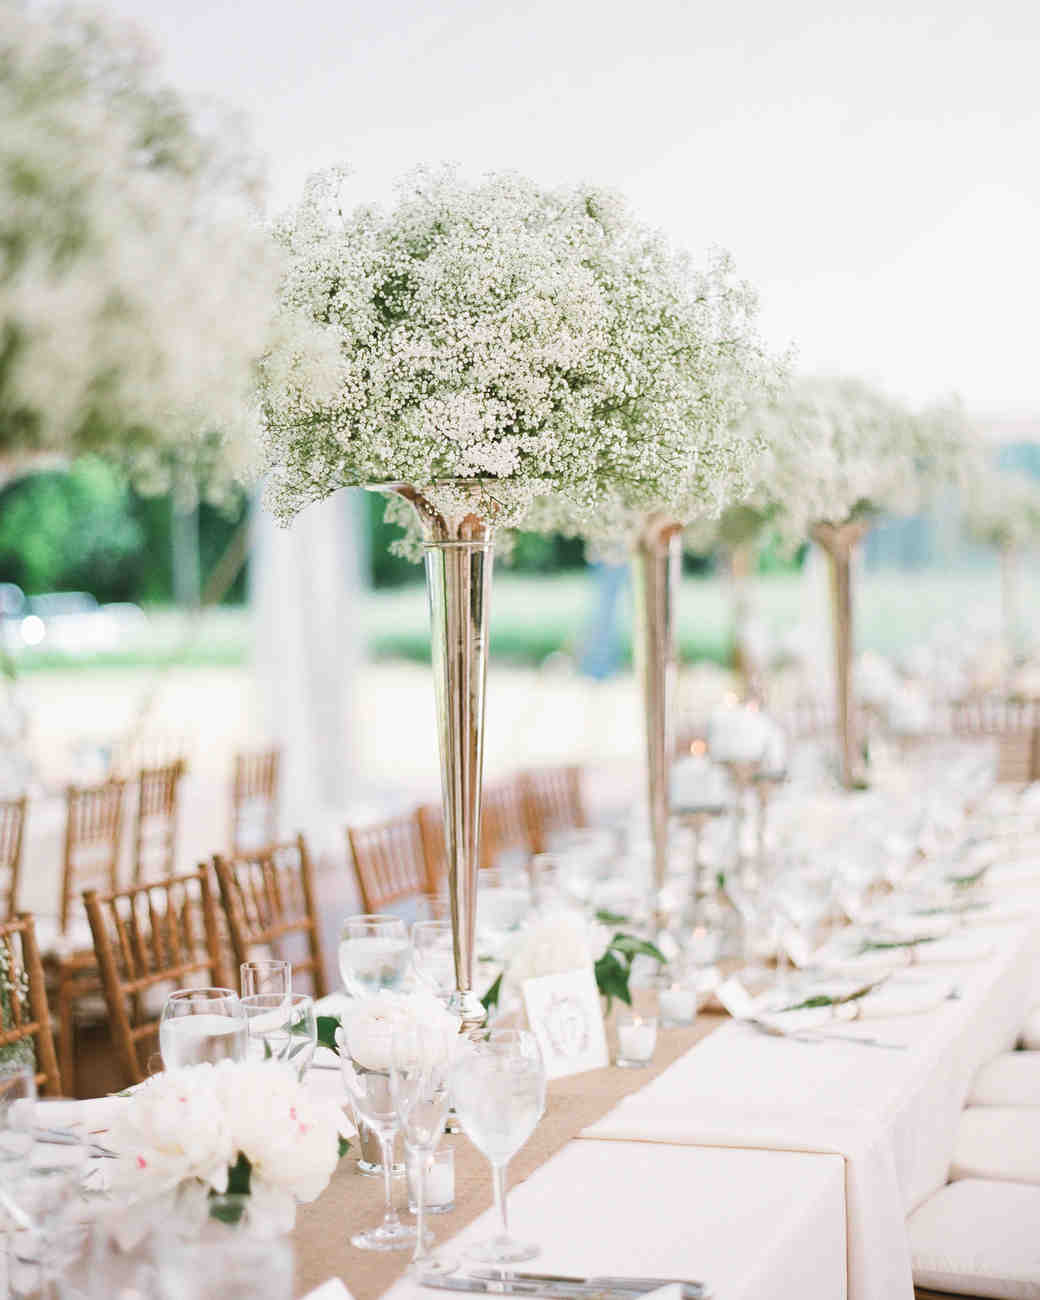 Simple Wedding Centerpieces Ideas: Affordable Wedding Centerpieces That Still Look Elevated